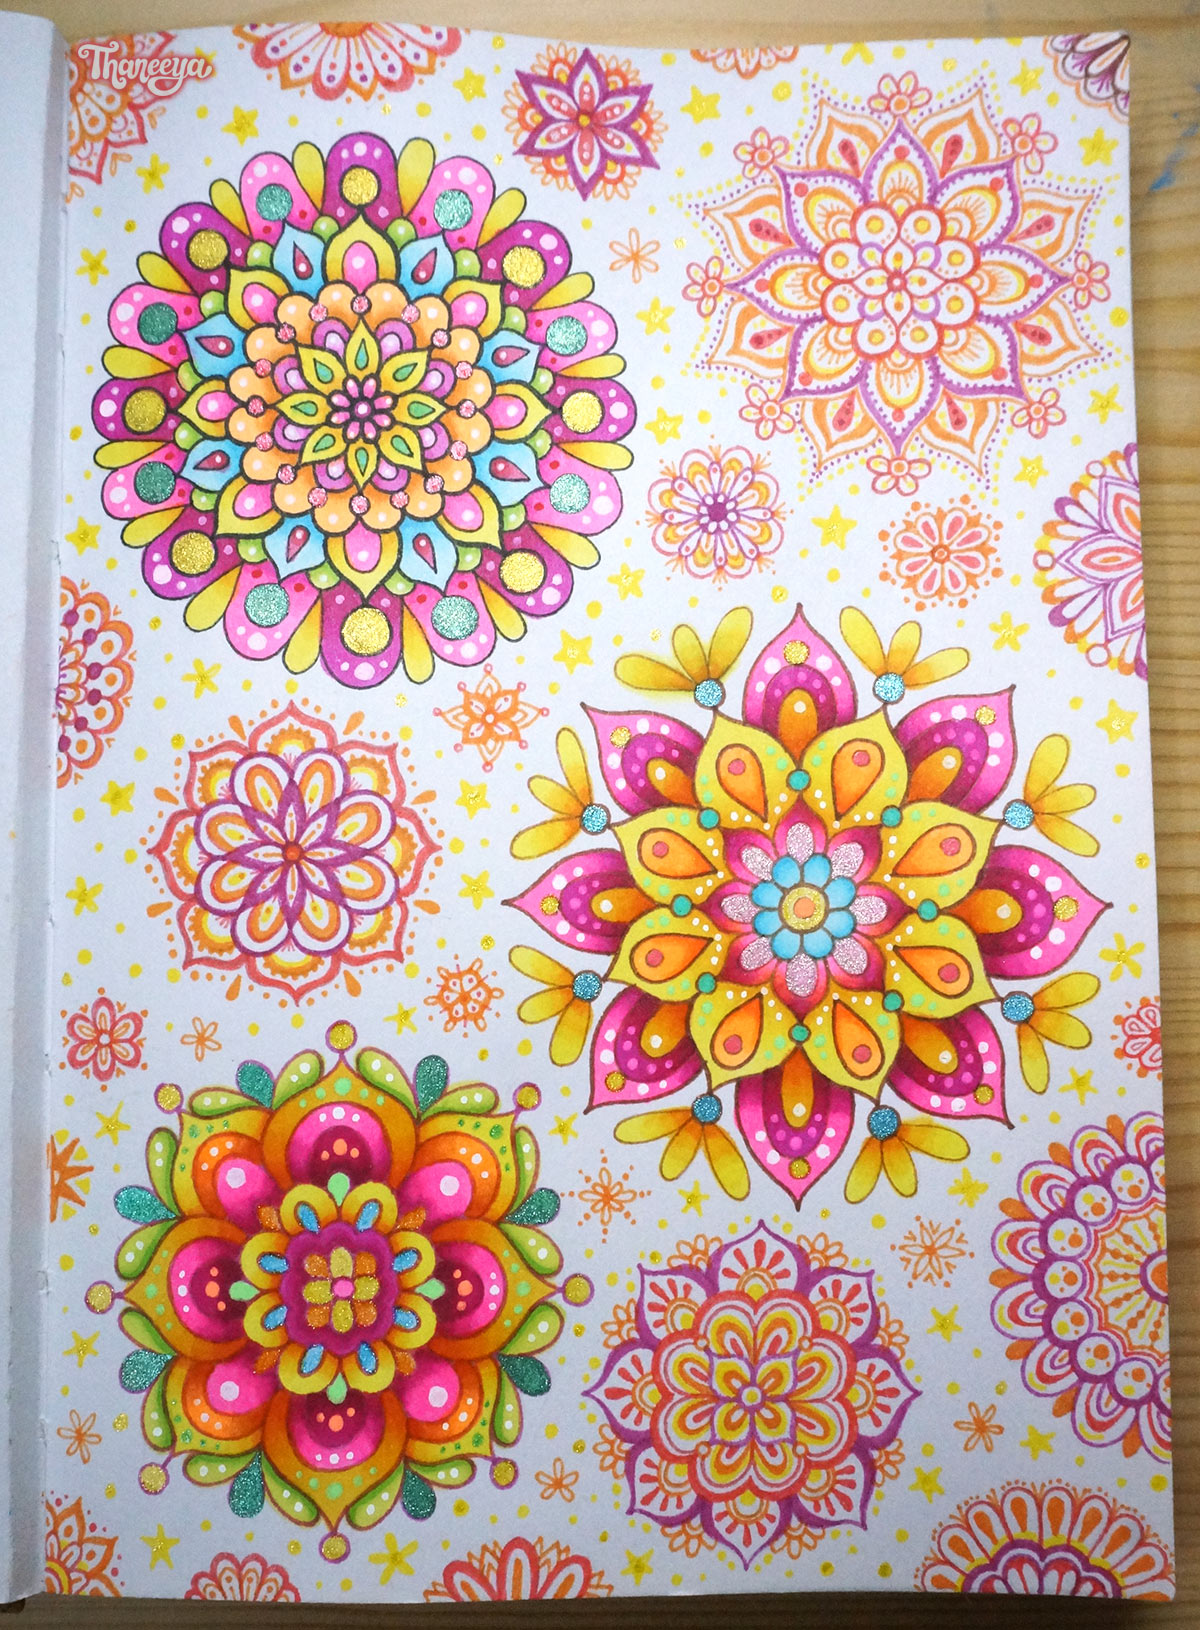 Spectrum Noir Mandala Doodles by Thaneeya McArdle